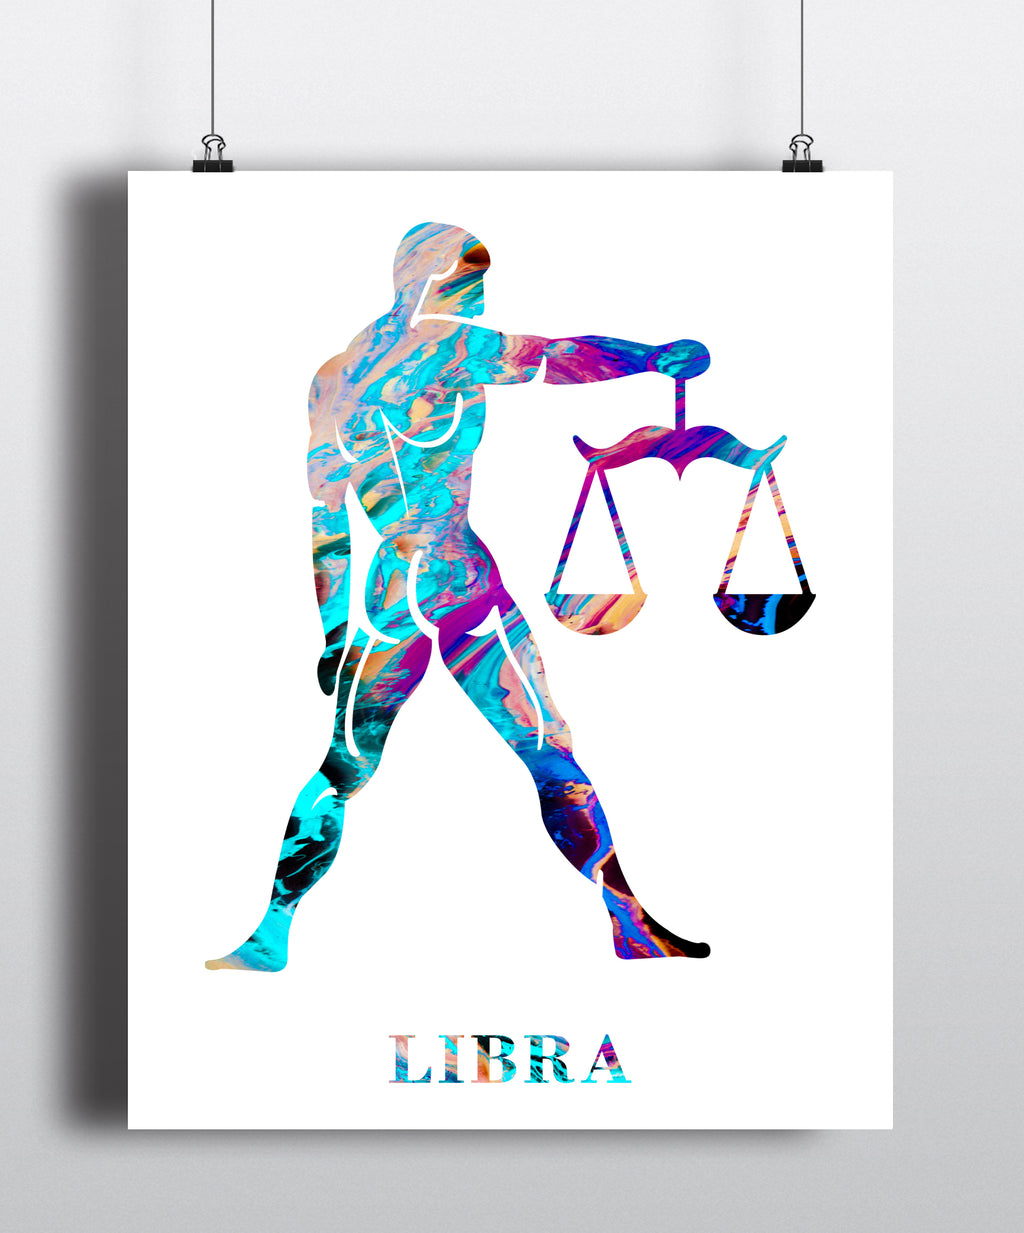 Libra Astrology Art Print - Unframed